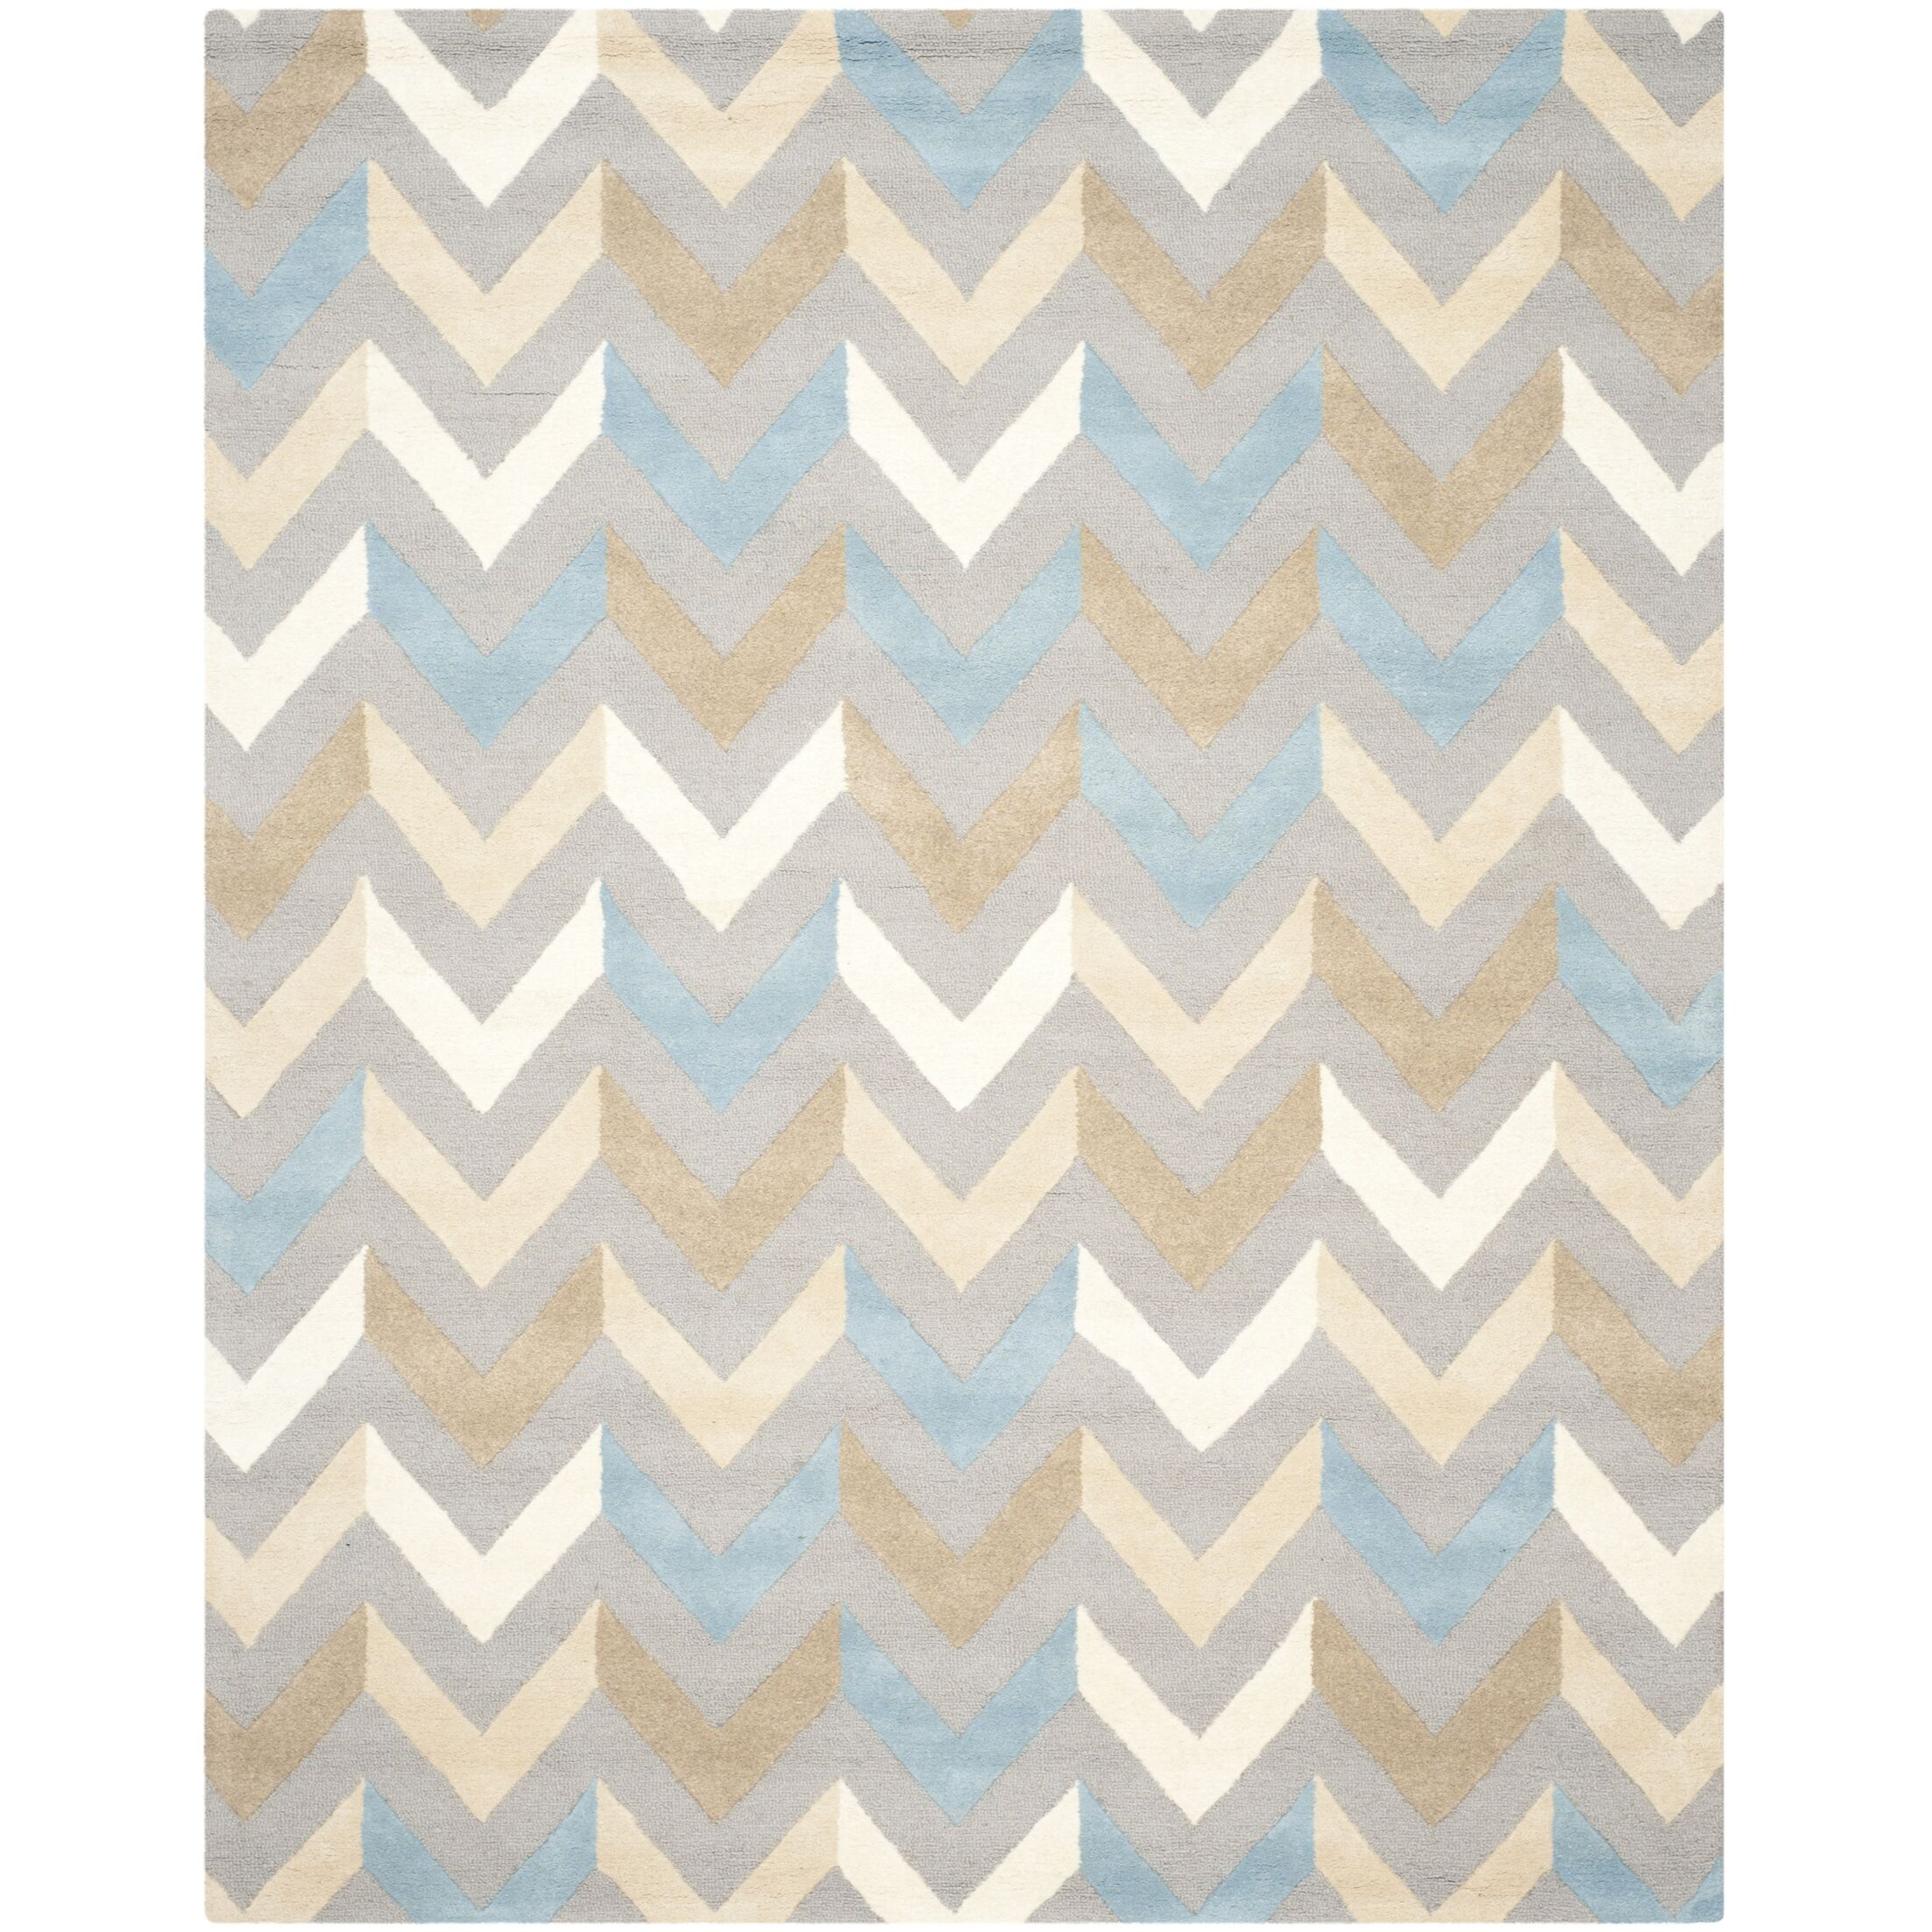 Martins Grey / Ivory Chevron Area Rug Rug Size: Rectangle 4' x 6'